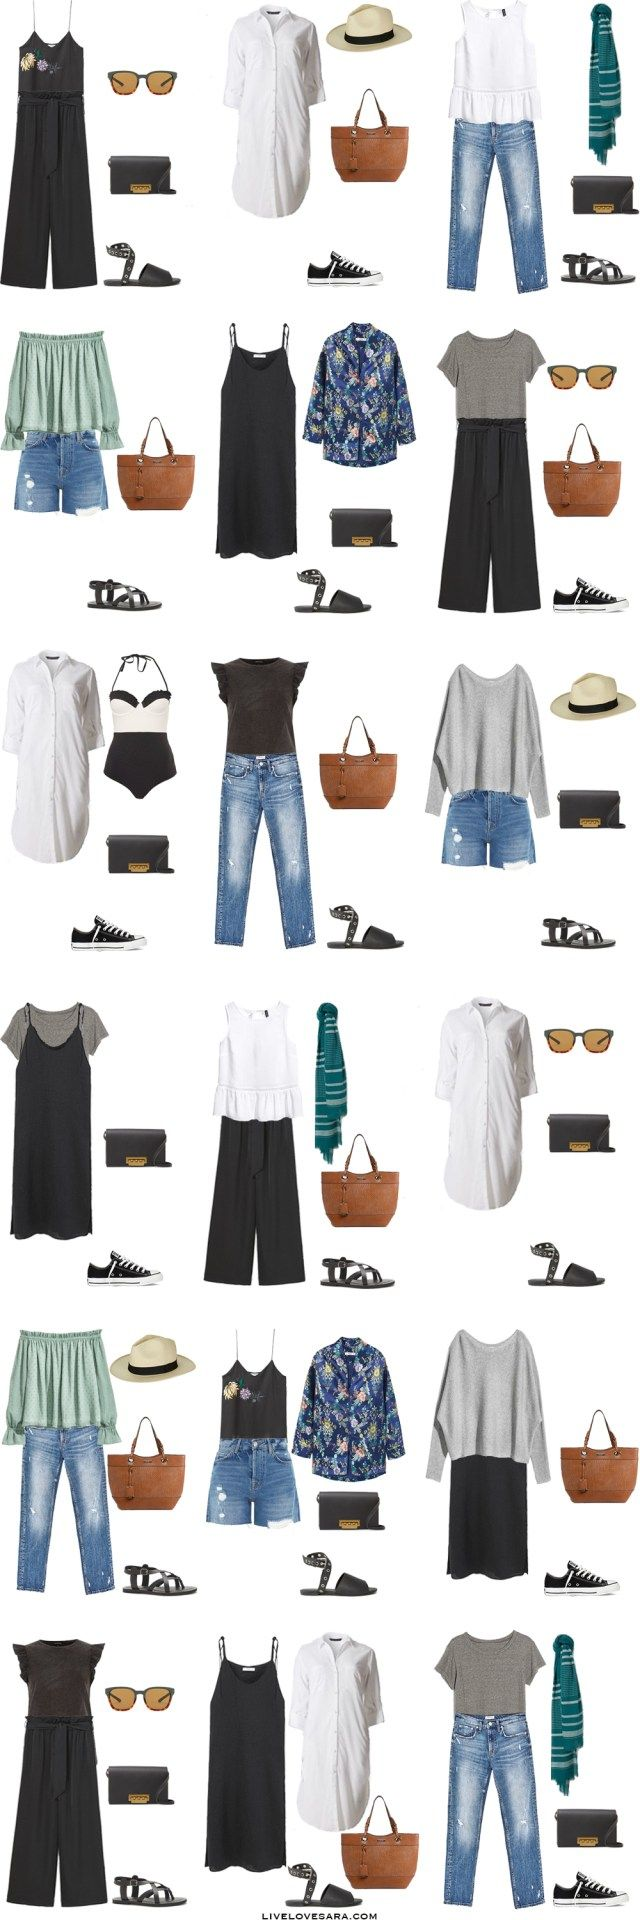 Packing List: 10 days in Madrid, Spain in Summer 2017 - What to Wear: Outfit Options. livelovesara